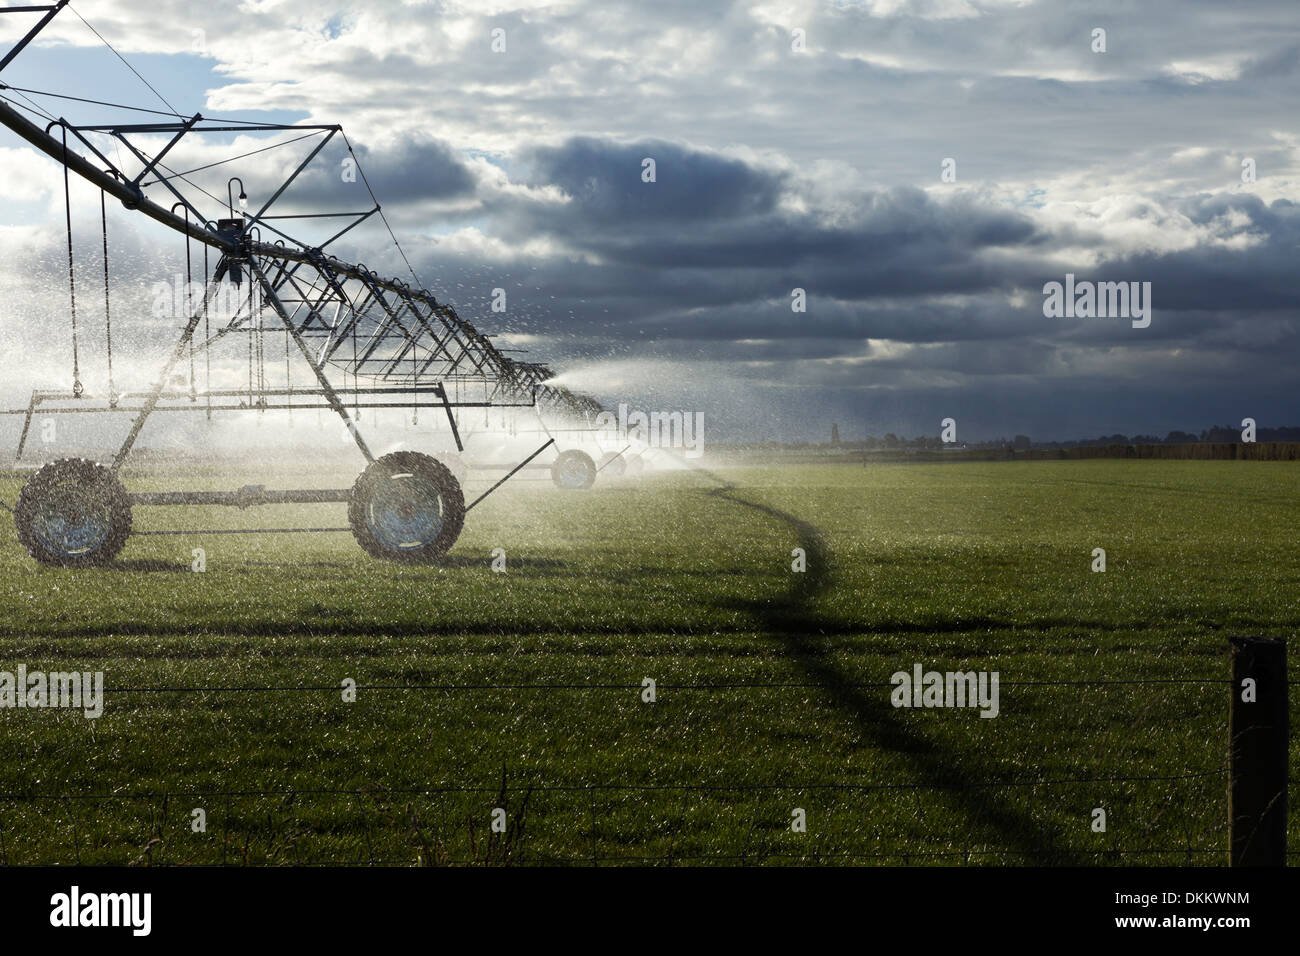 Irrigation booms spray water onto a pasture on the South Island of New Zealand - Stock Image